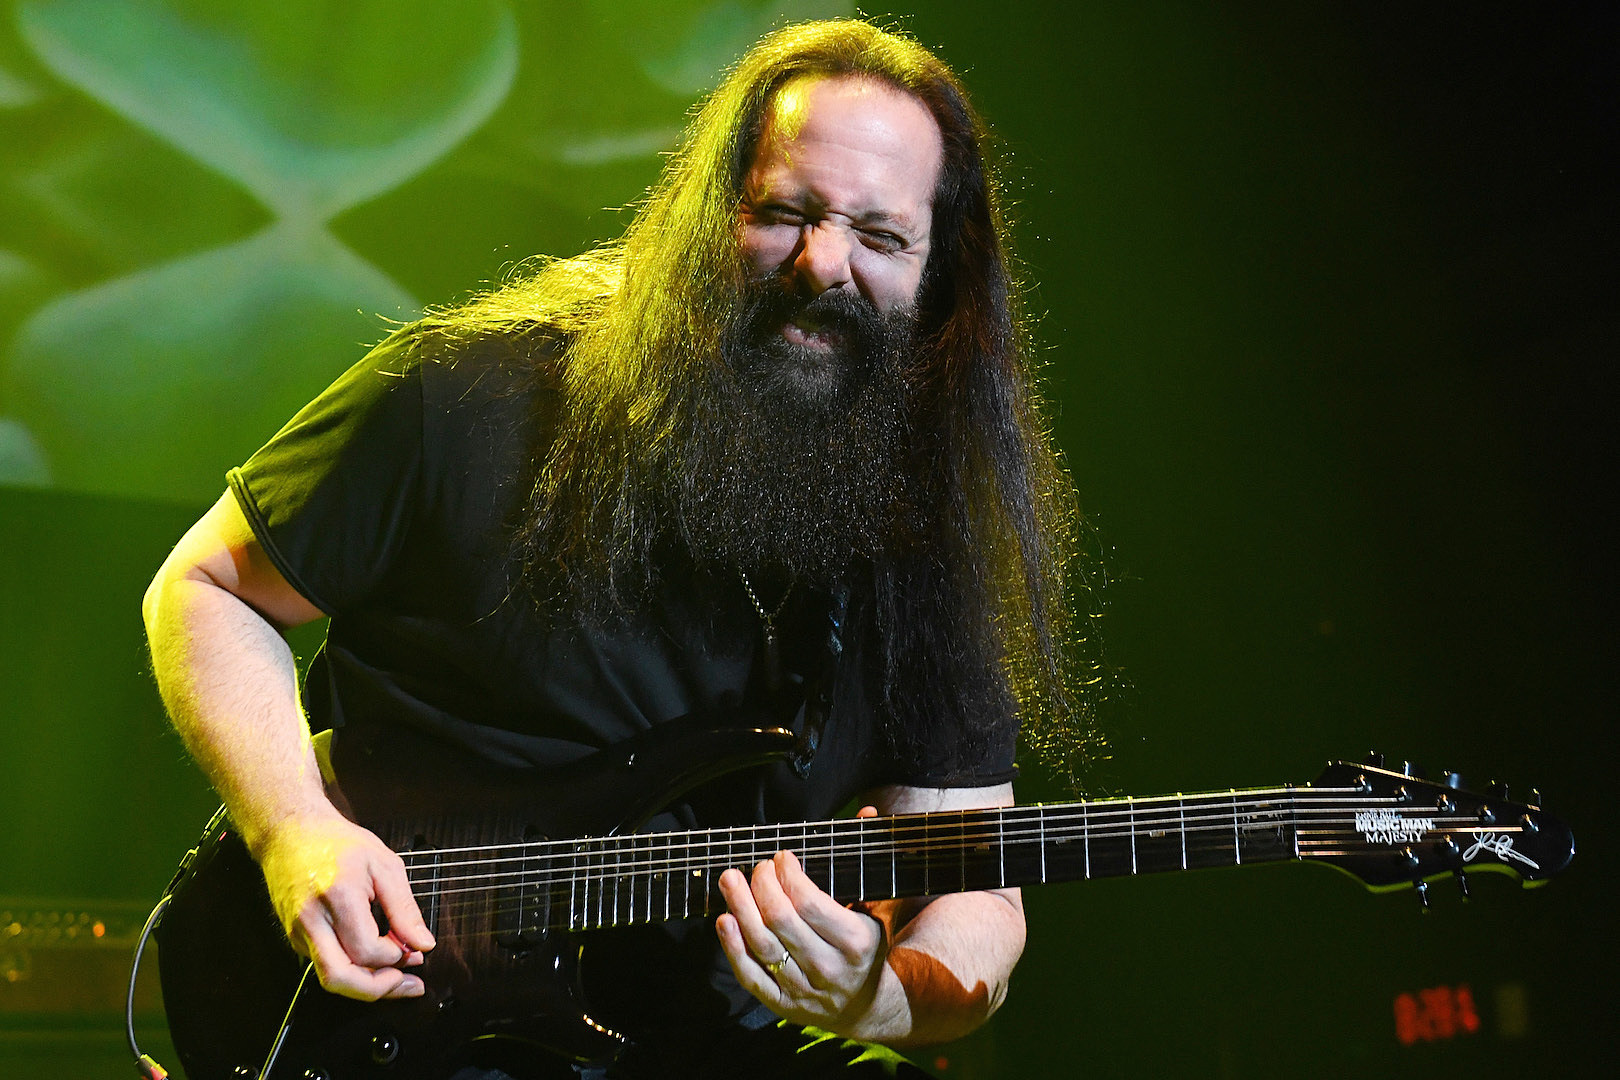 Weekly Wire: New Music From Dream Theater, Danny Worsnop + More